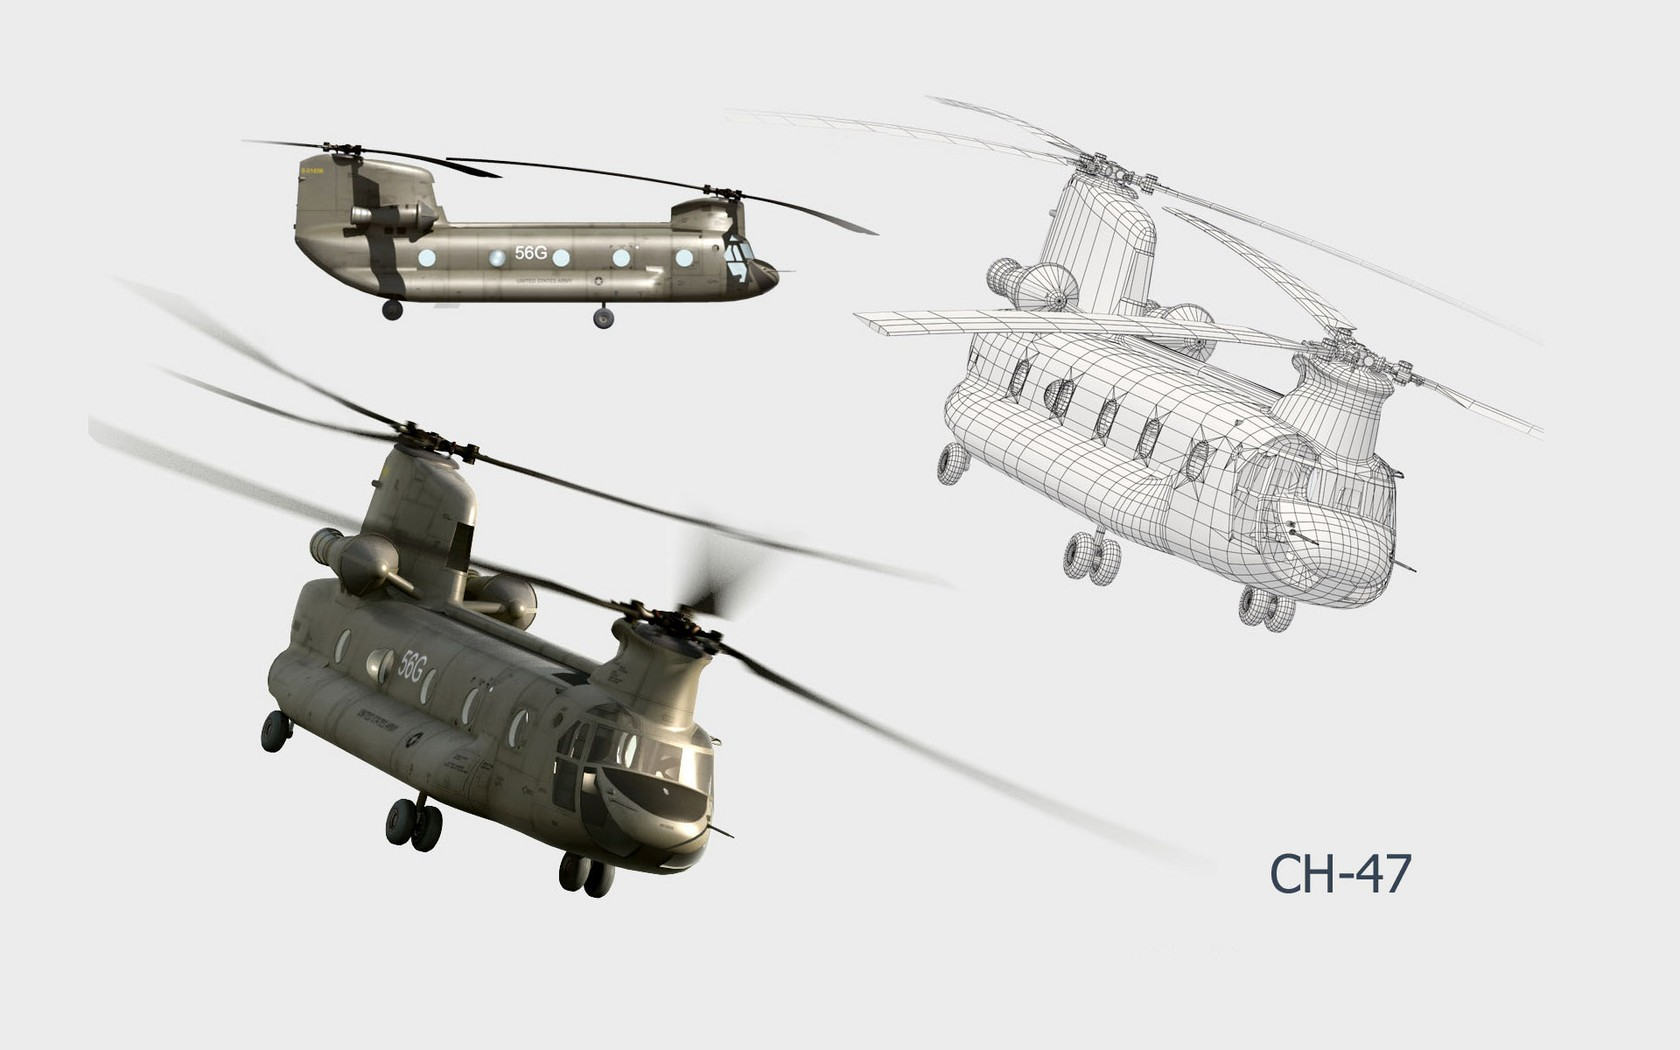 CH-47 Chinook Simple Background HD Wallpaper